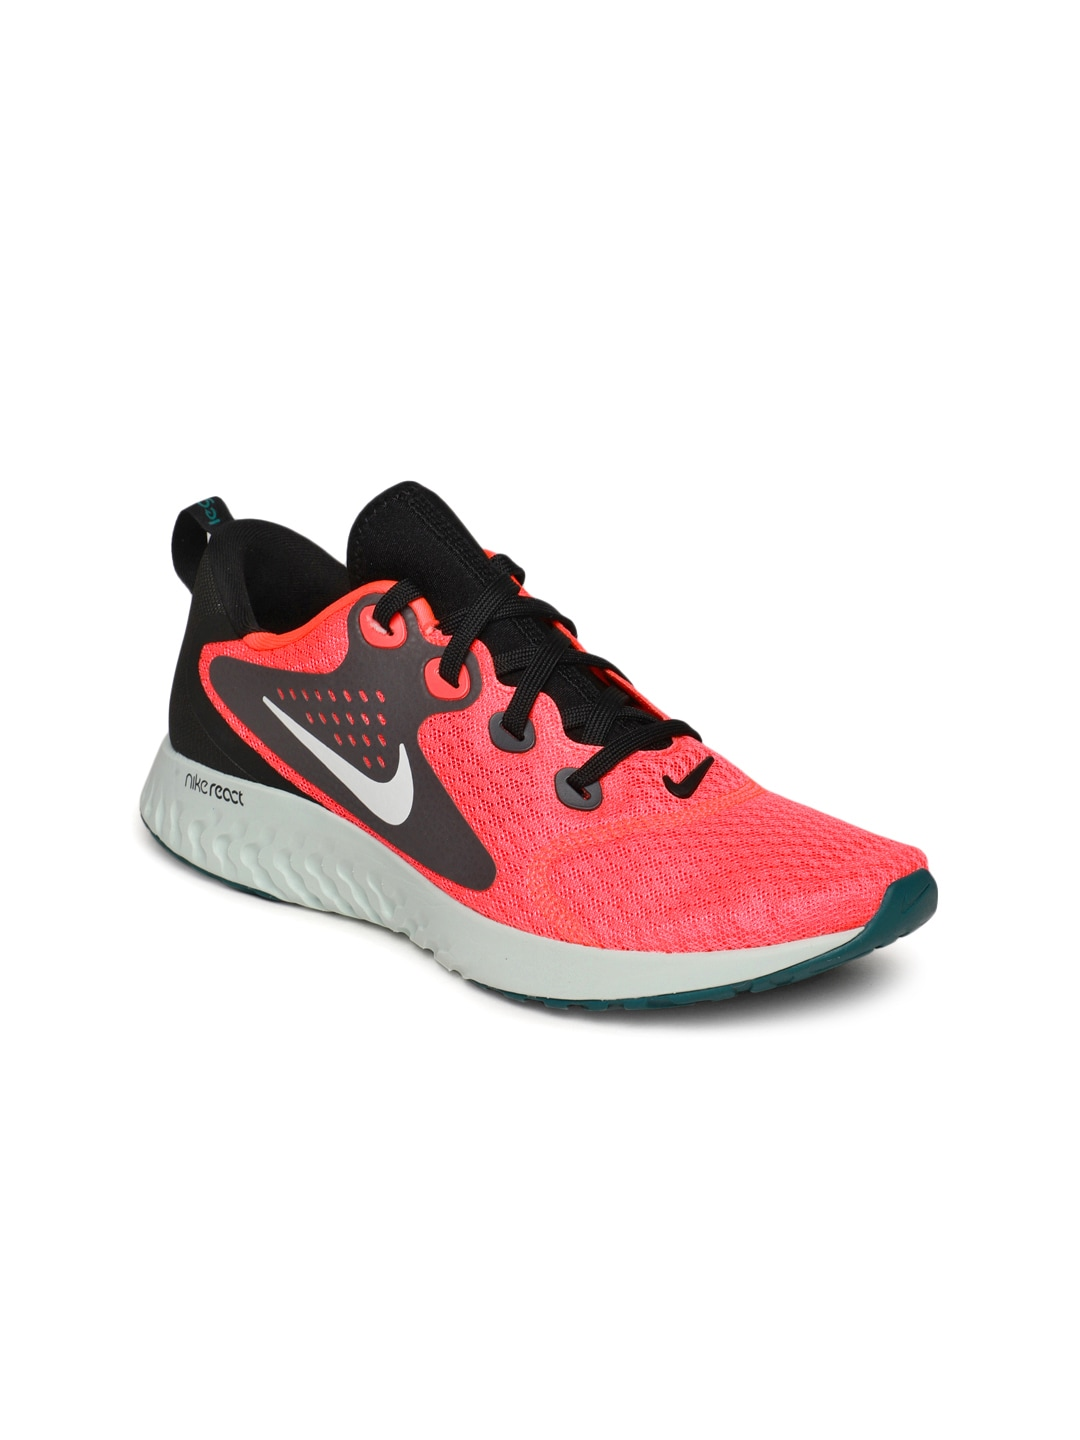 143f9f2287d3c Pink Nike - Buy Pink Nike online in India